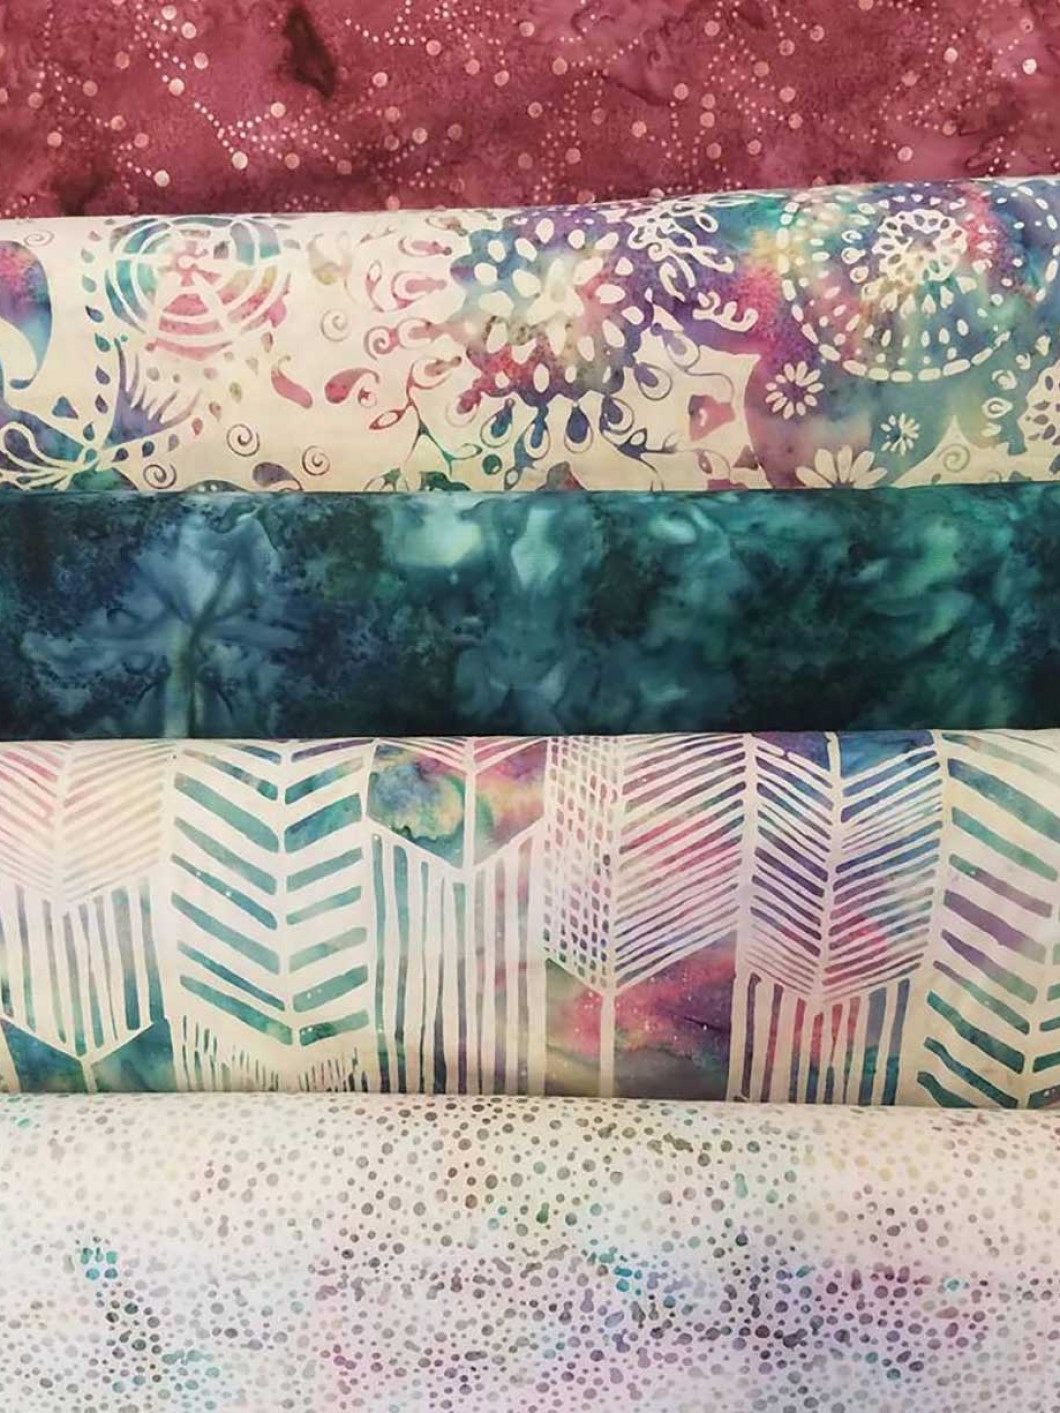 Choose 100% Cotton Yard Goods From Sew N Sew Shop